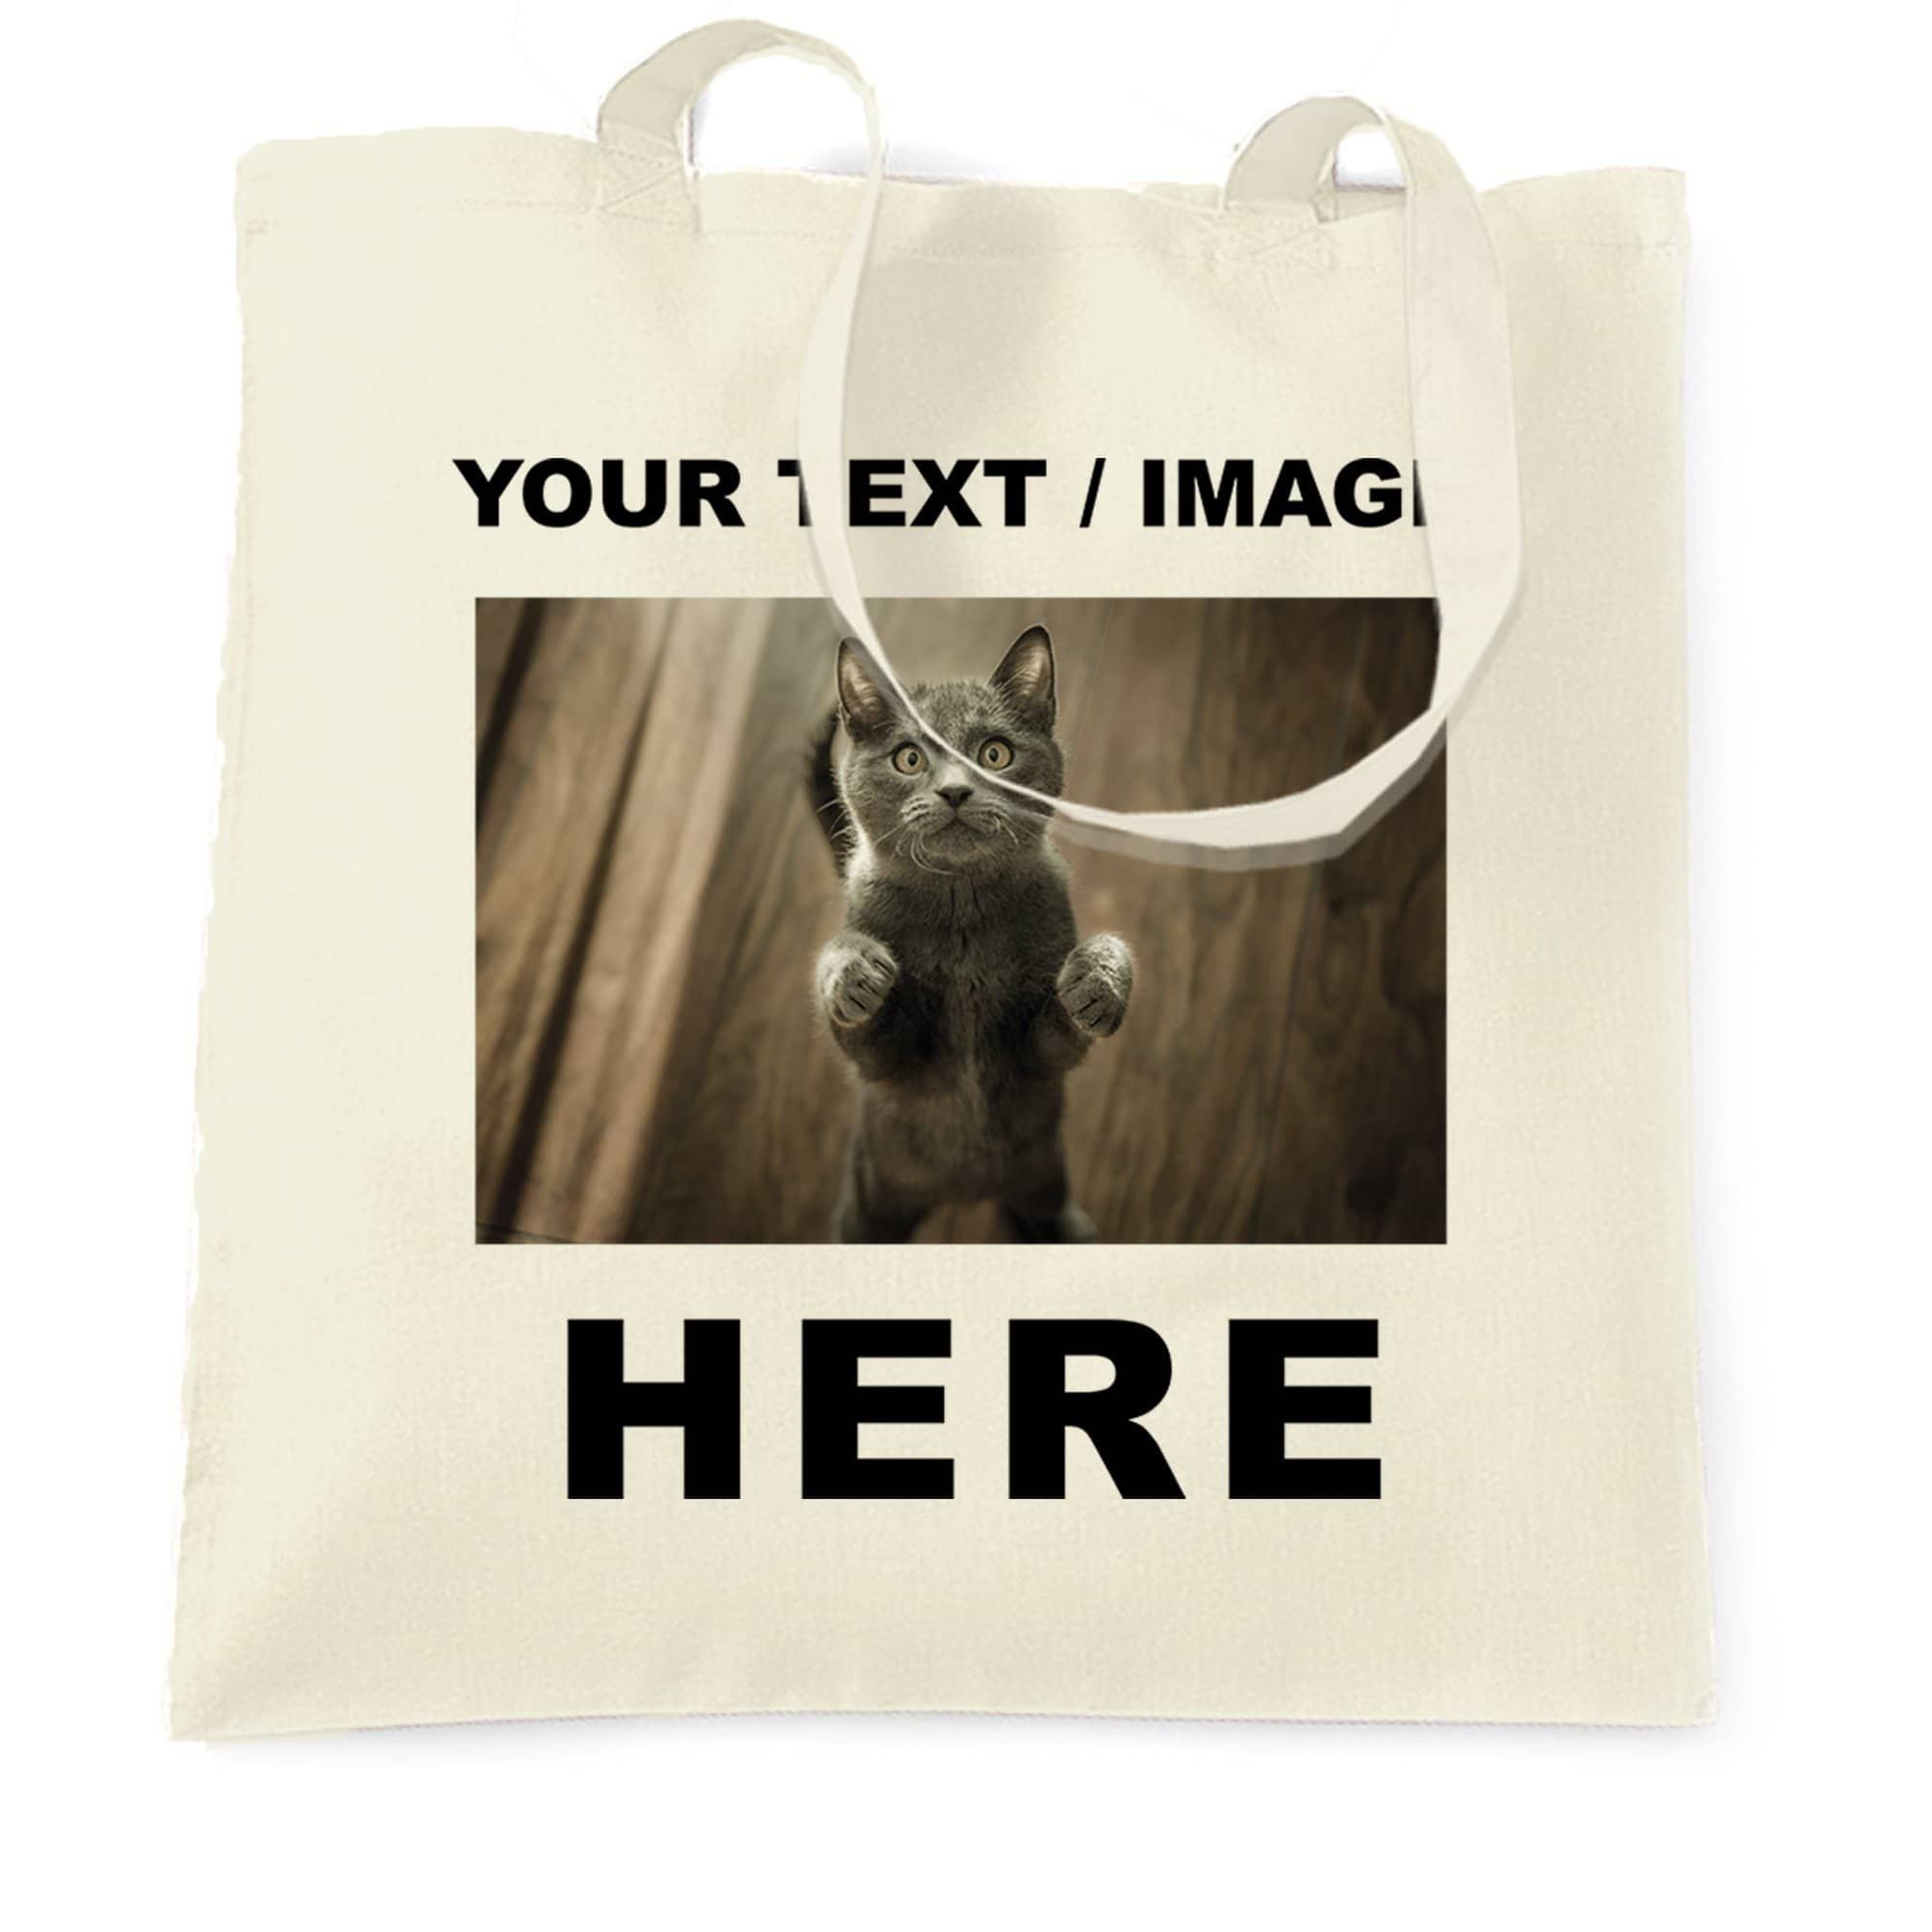 Custom Printed Tote Bag with Your Text or Image